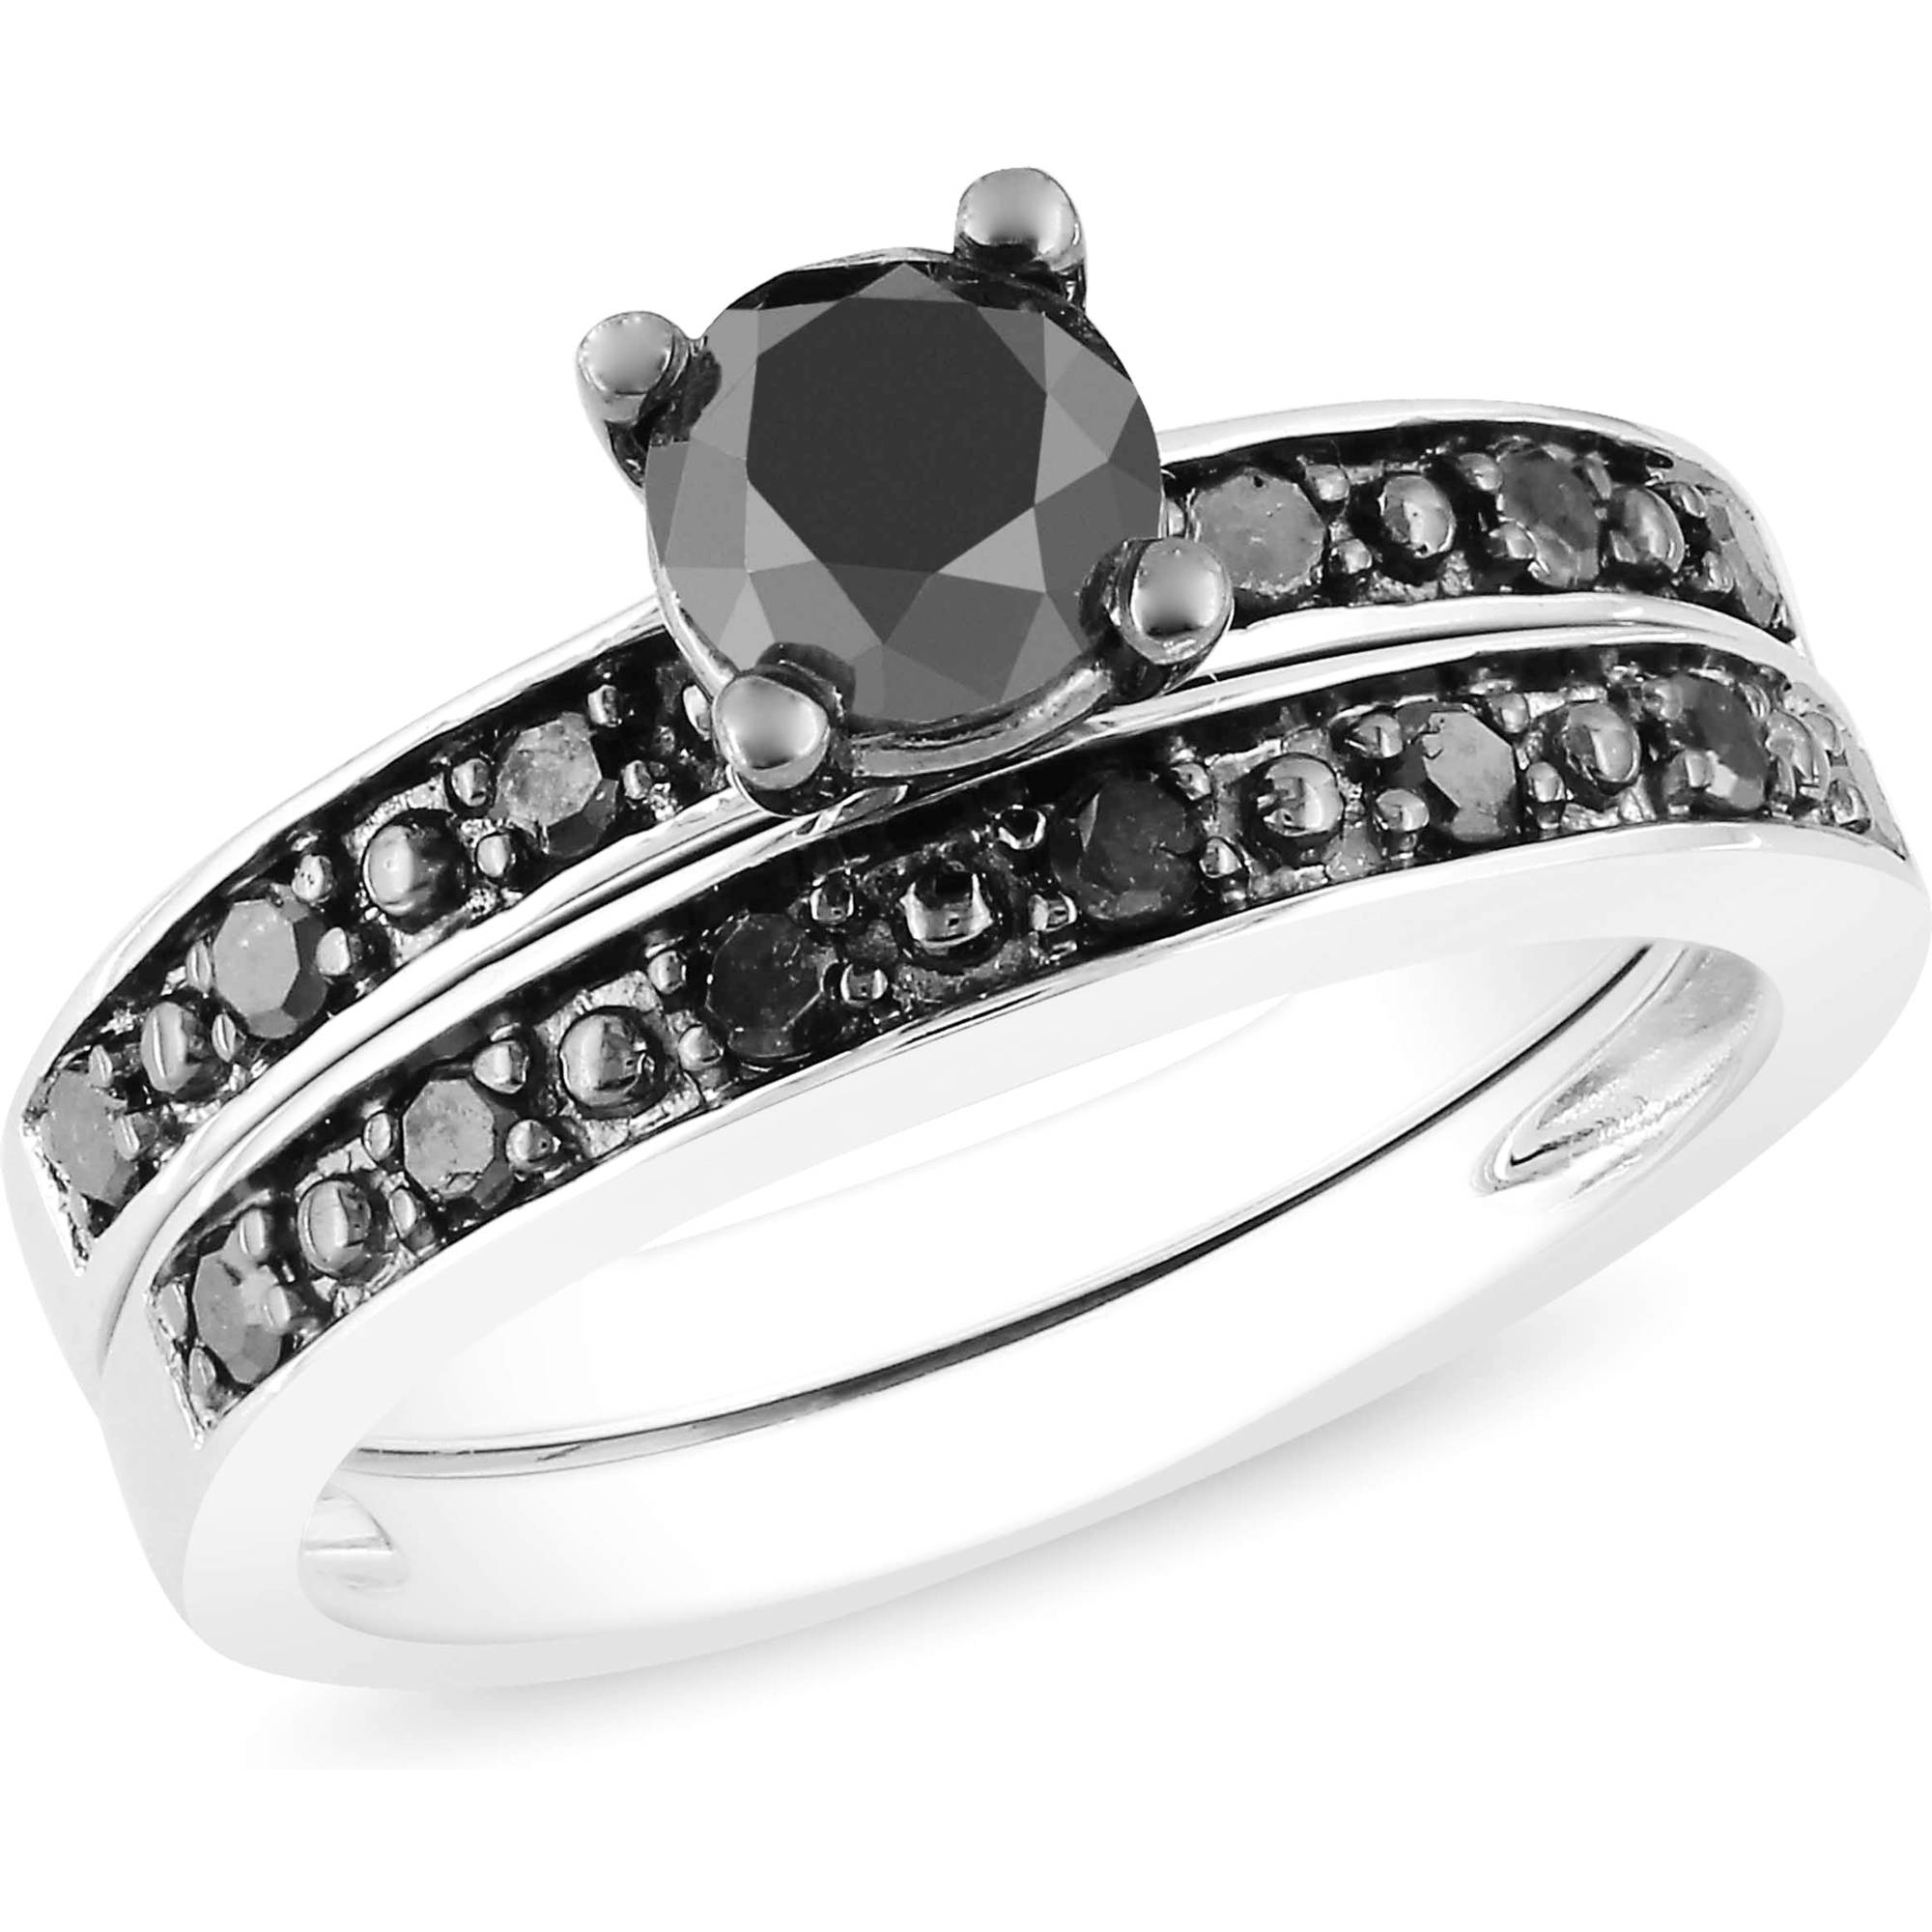 1 Carat T.W. Black Diamond Sterling Silver Bridal Set